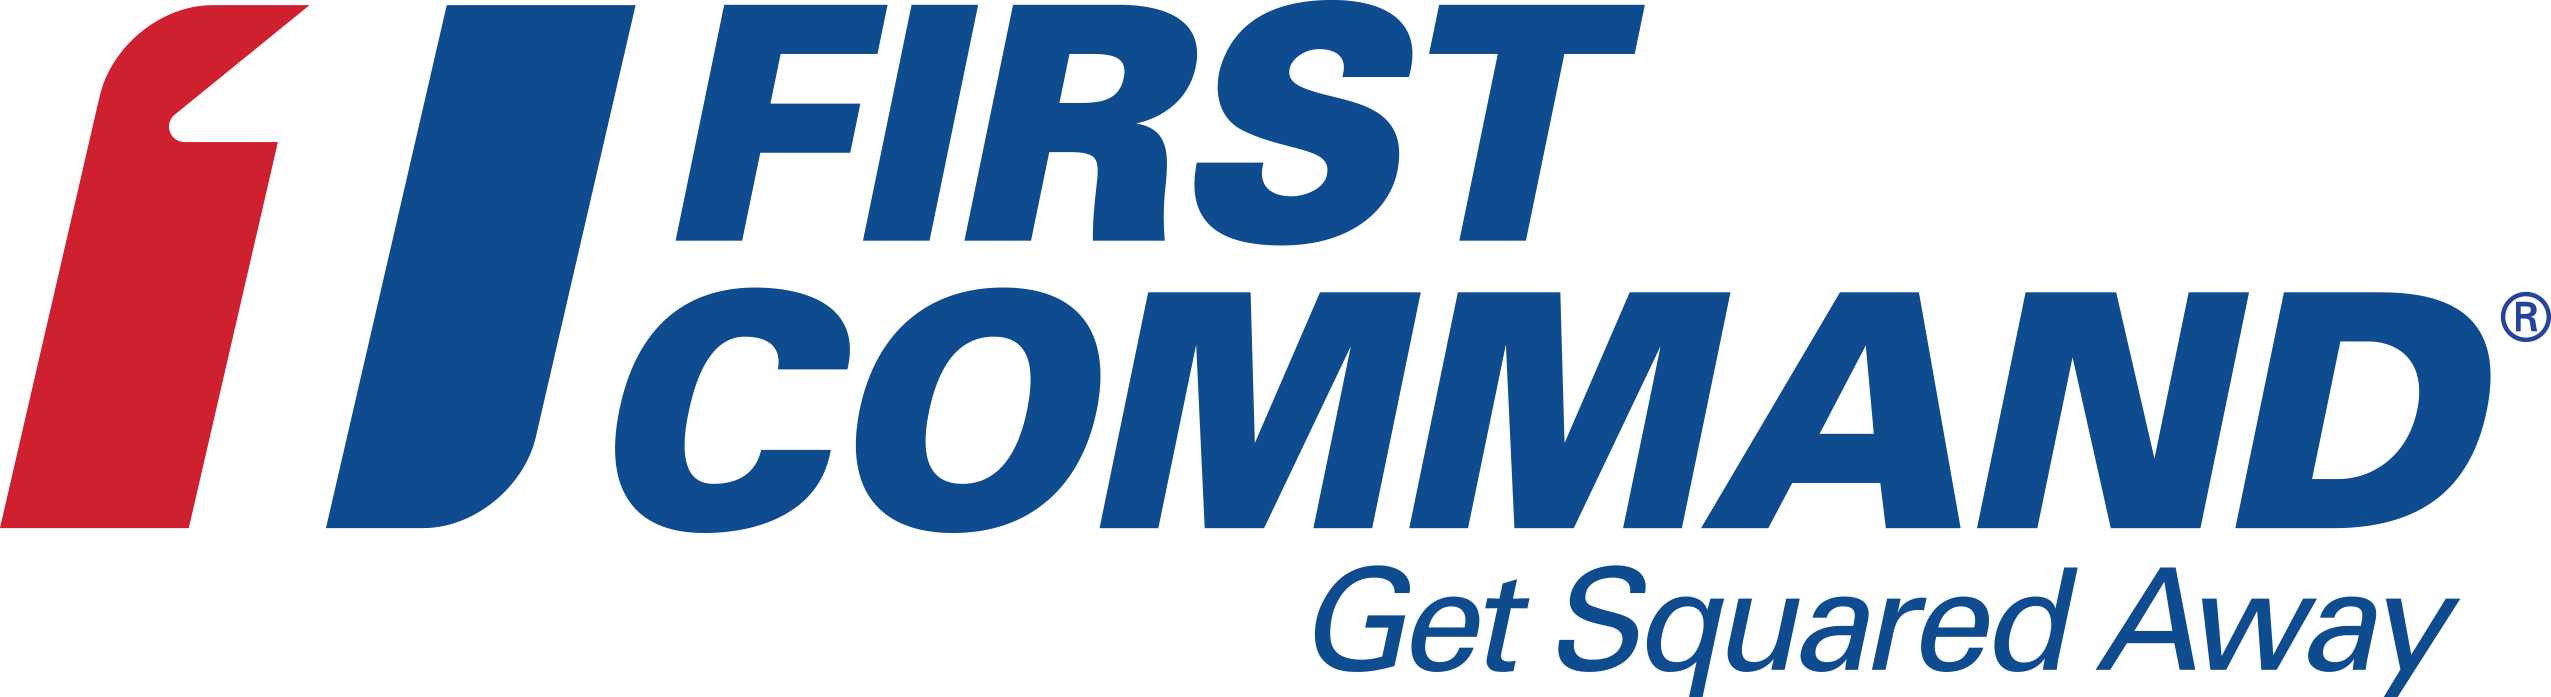 First_Command_logo_RGB_outline.png